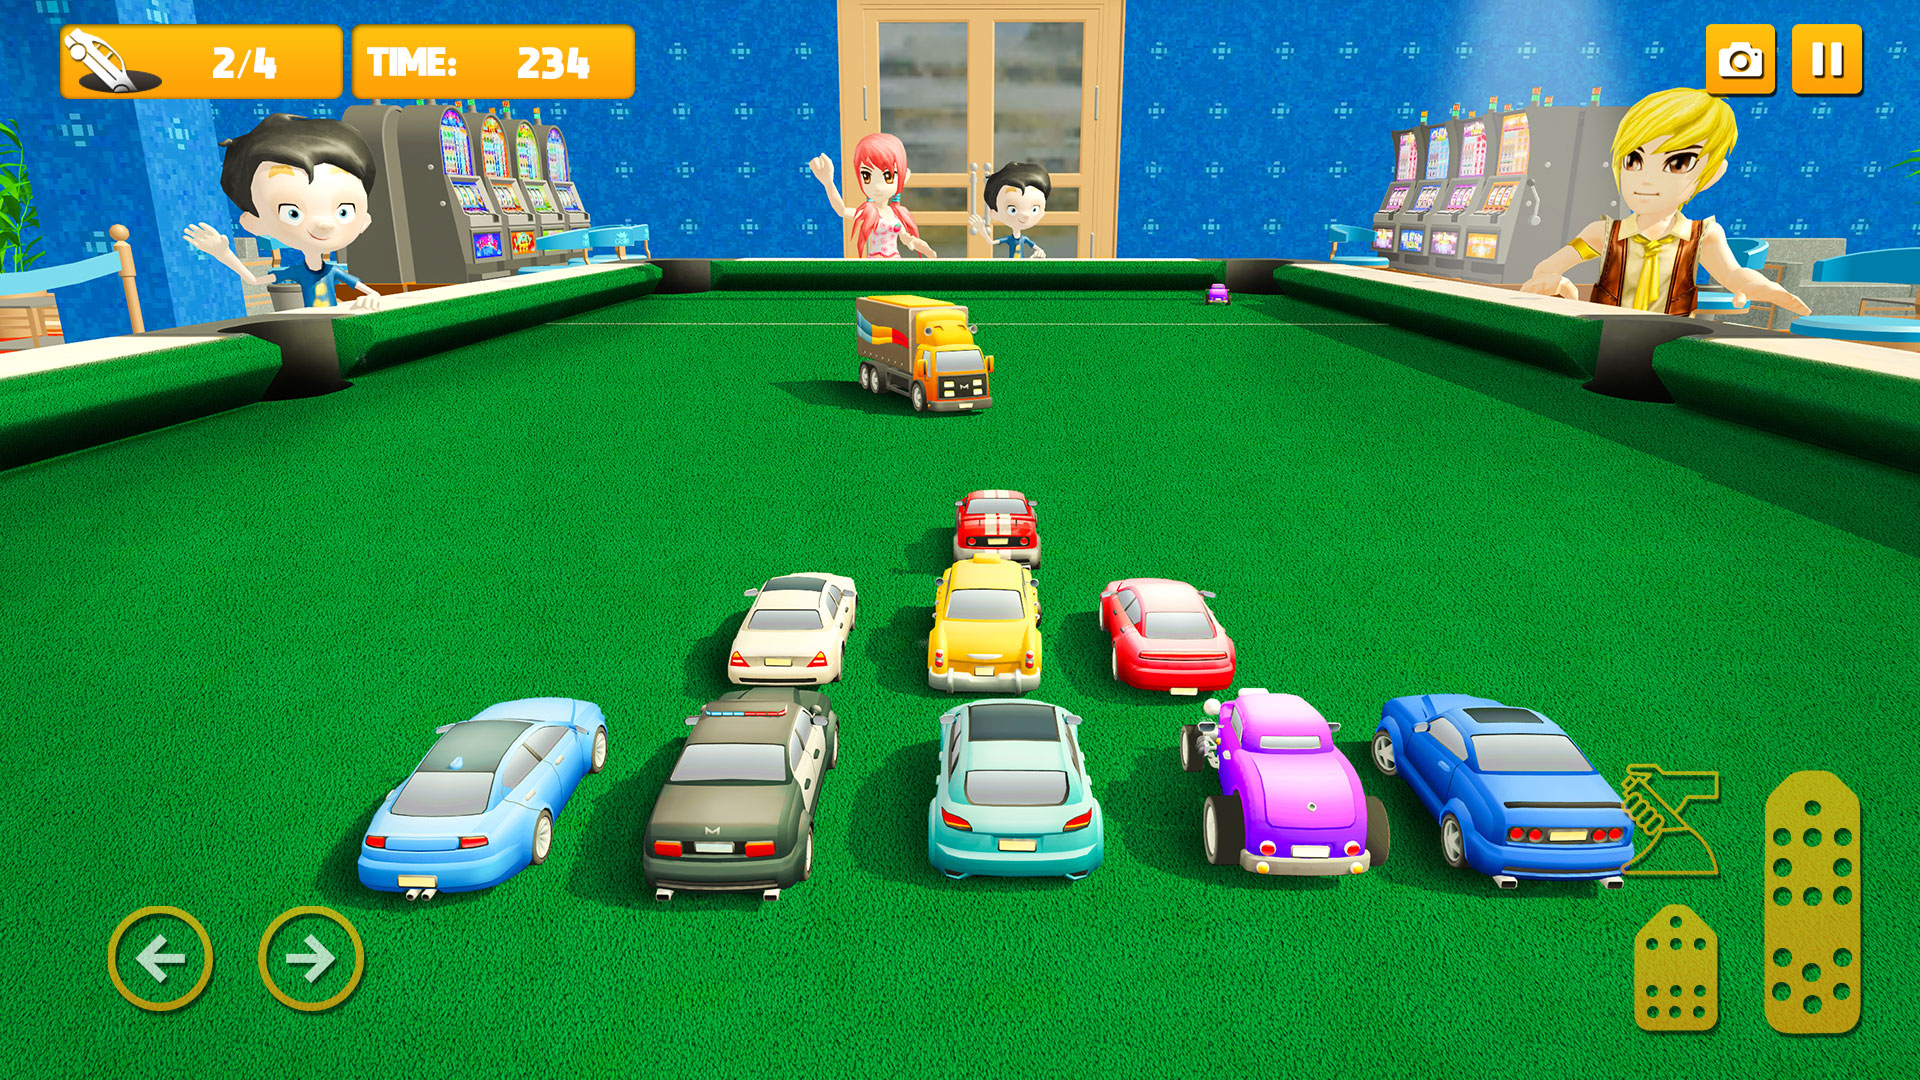 Billares Pool Cars Demolition: RCC Simulation: Amazon.es: Appstore para Android